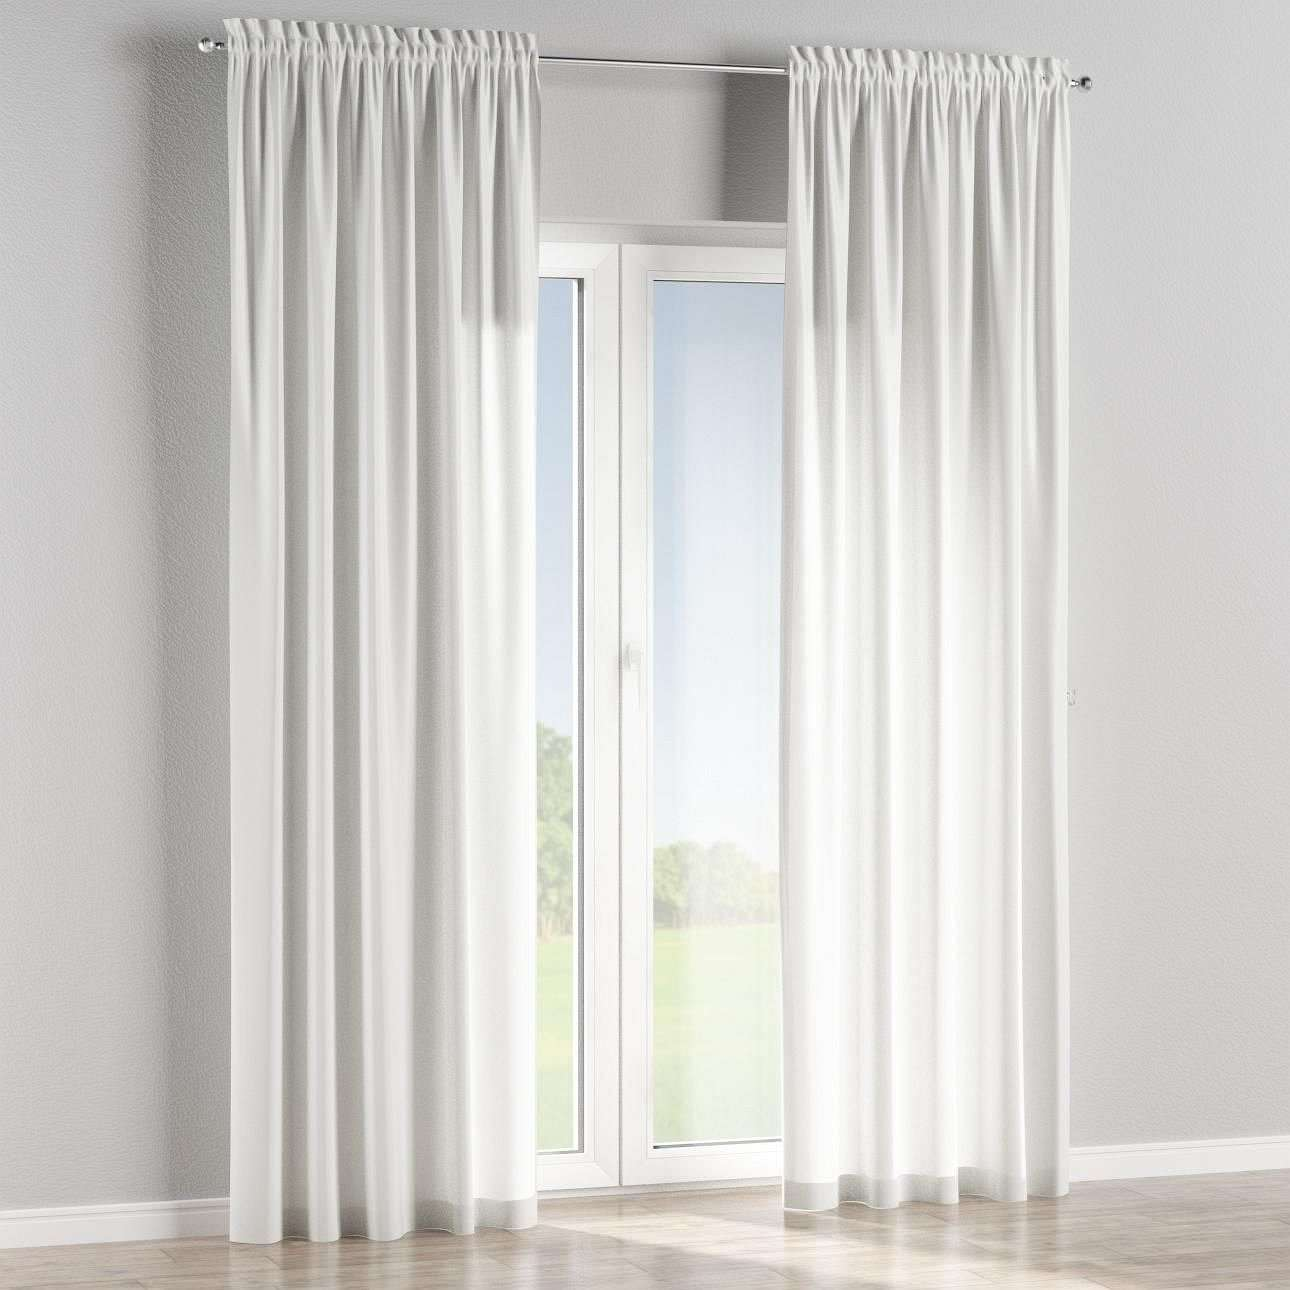 Slot and frill curtains in collection SALE, fabric: 136-25